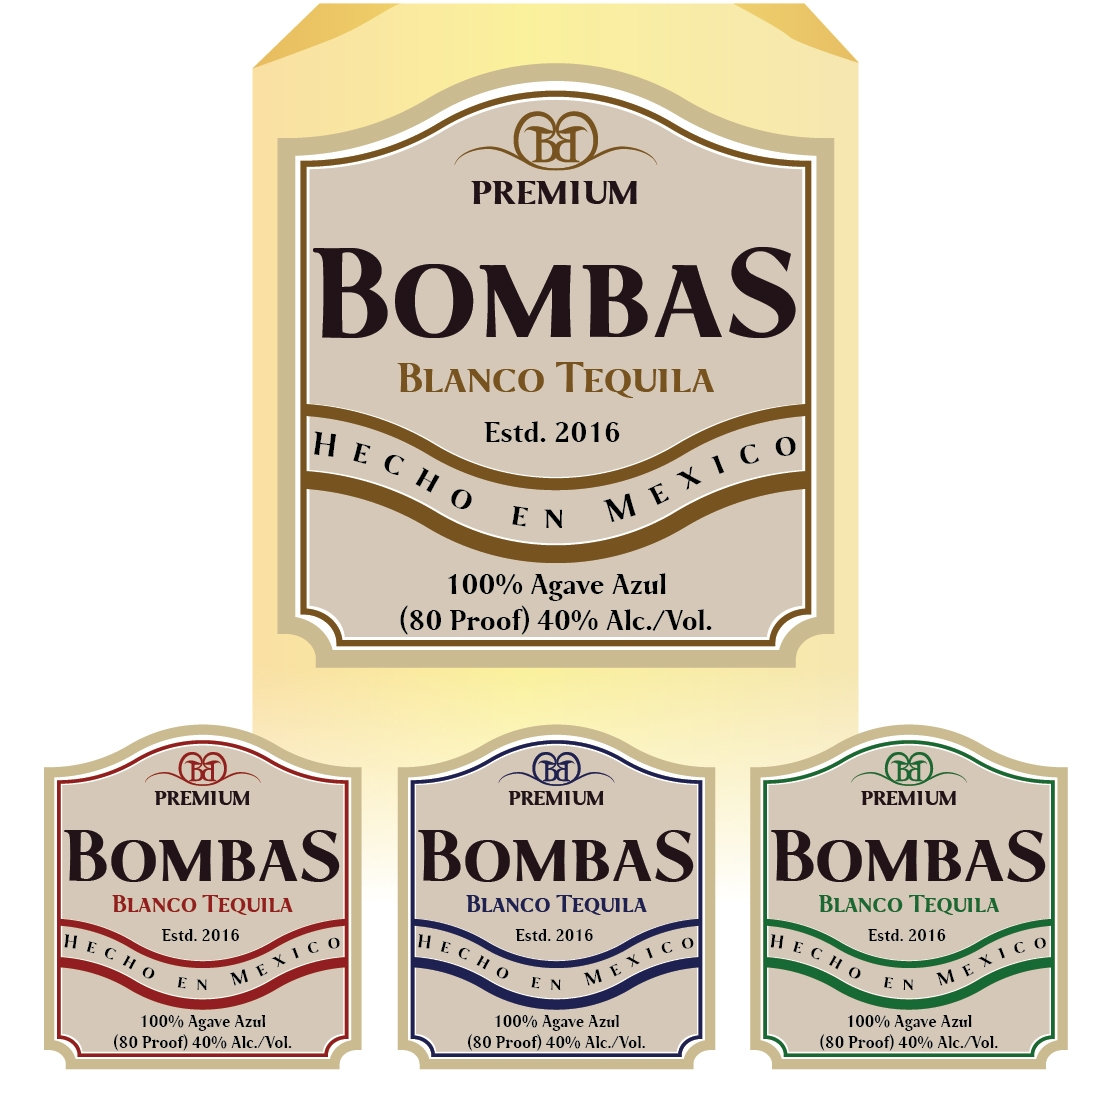 Bombas Tequila label designs